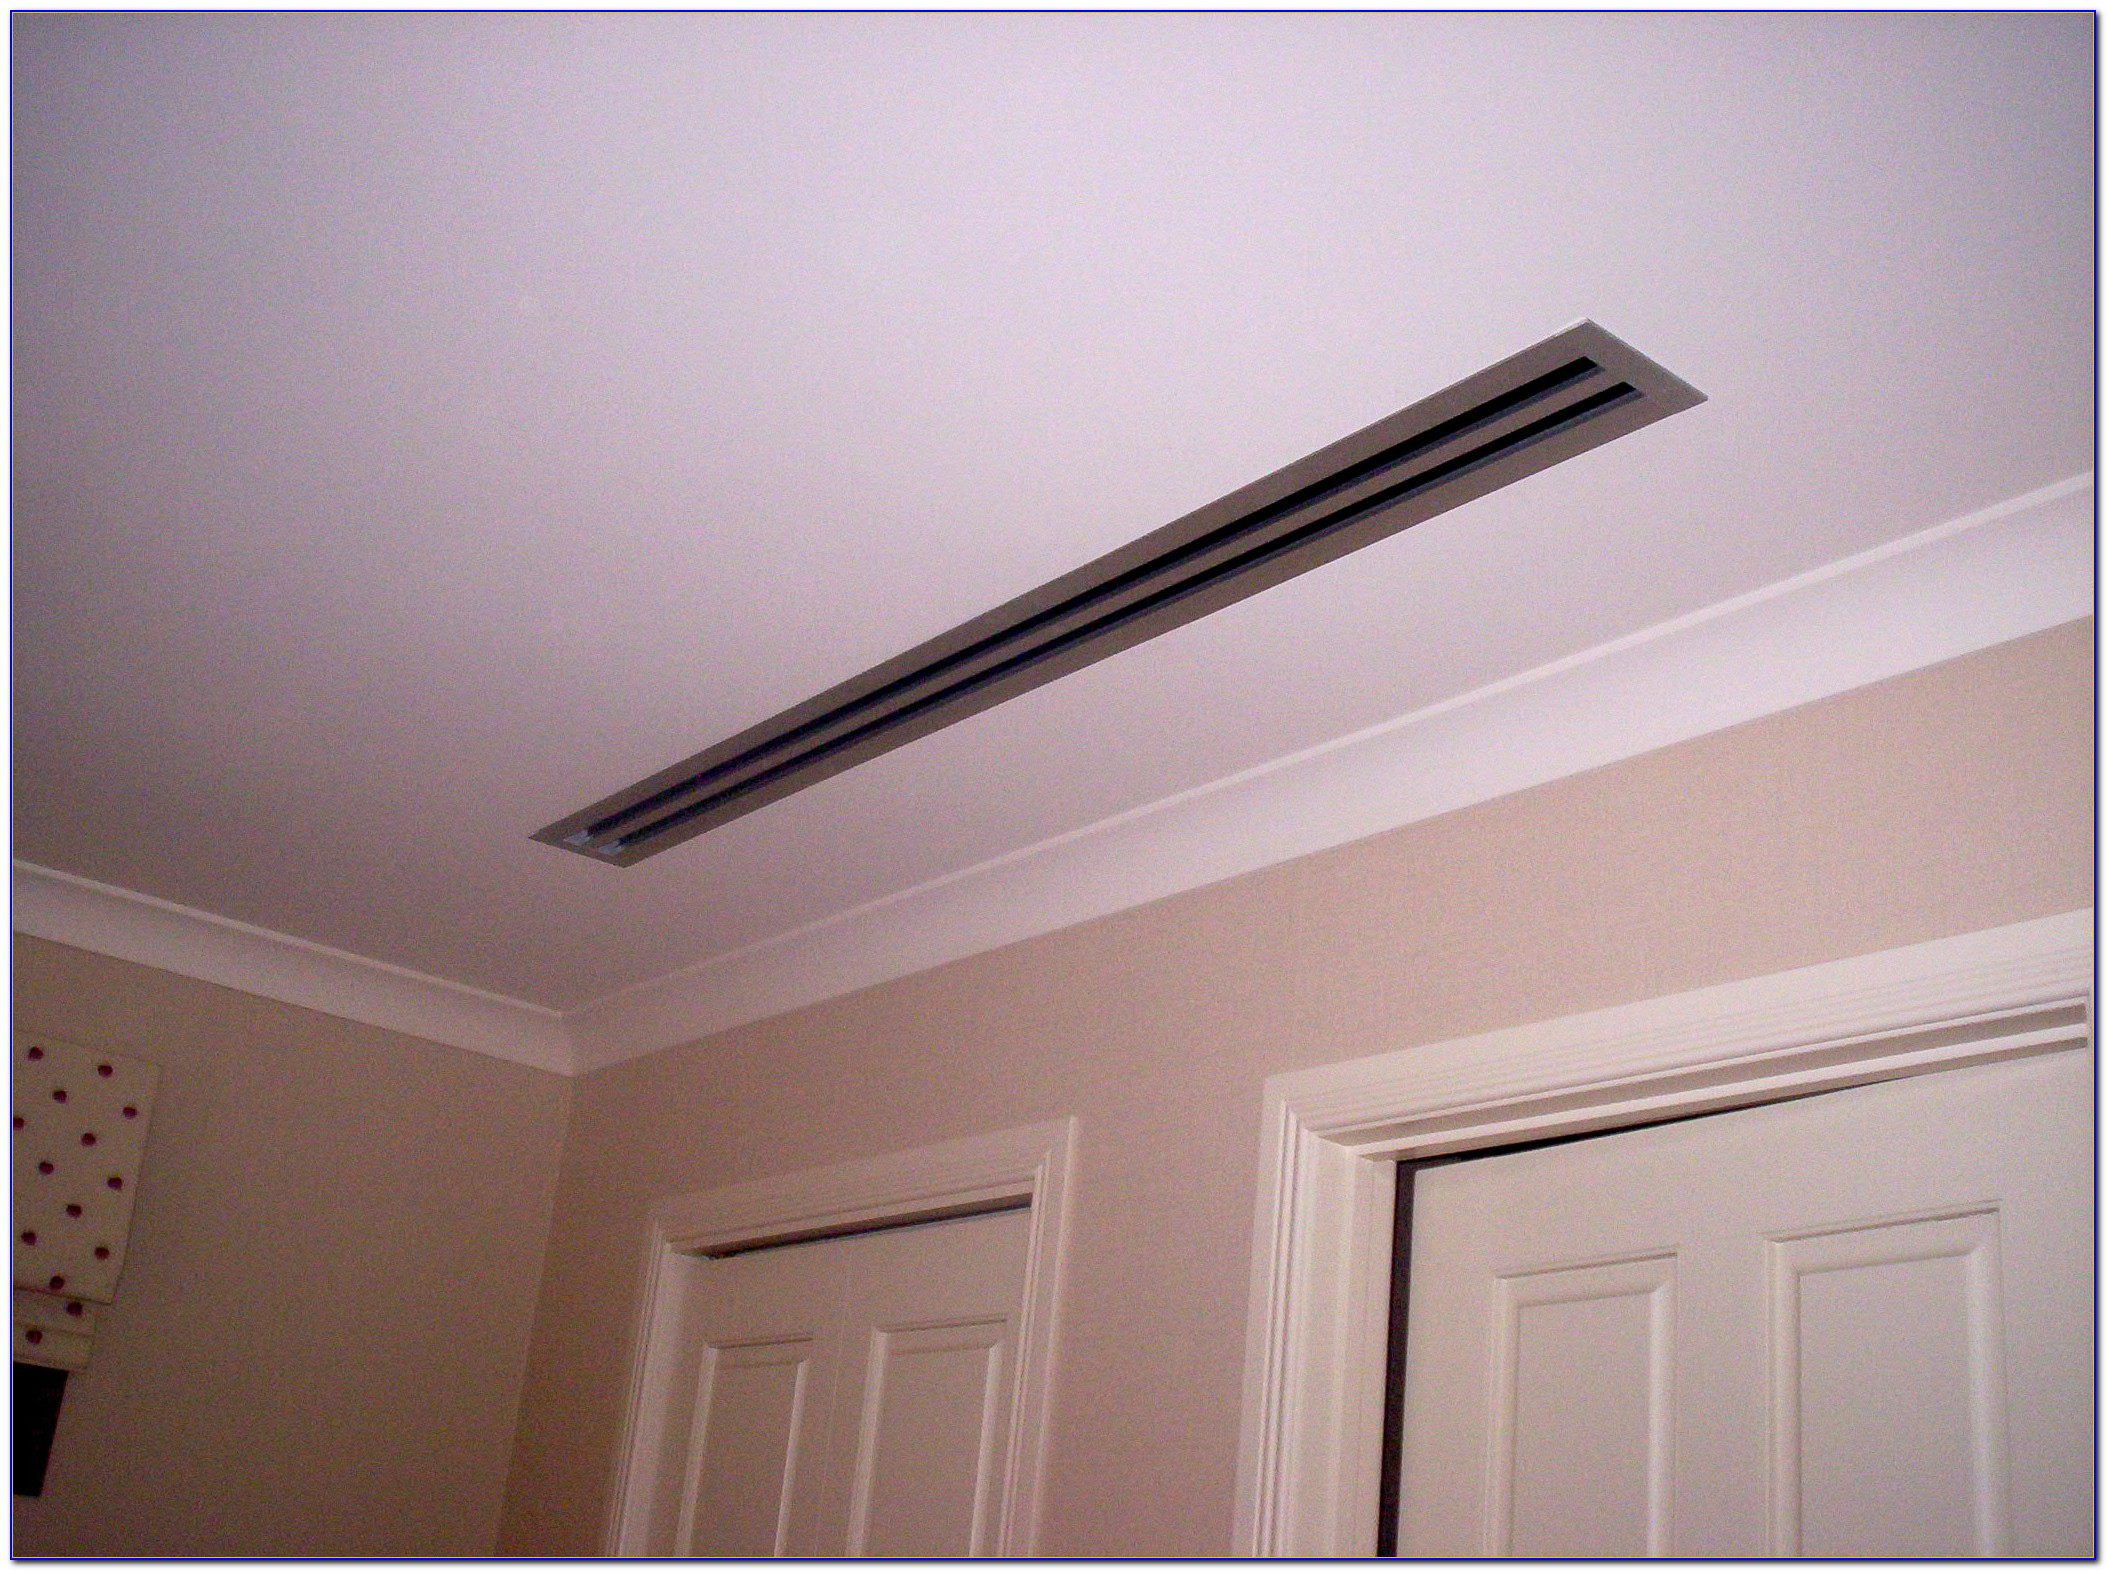 Ceiling Air Conditioning Vent Deflector Home Design